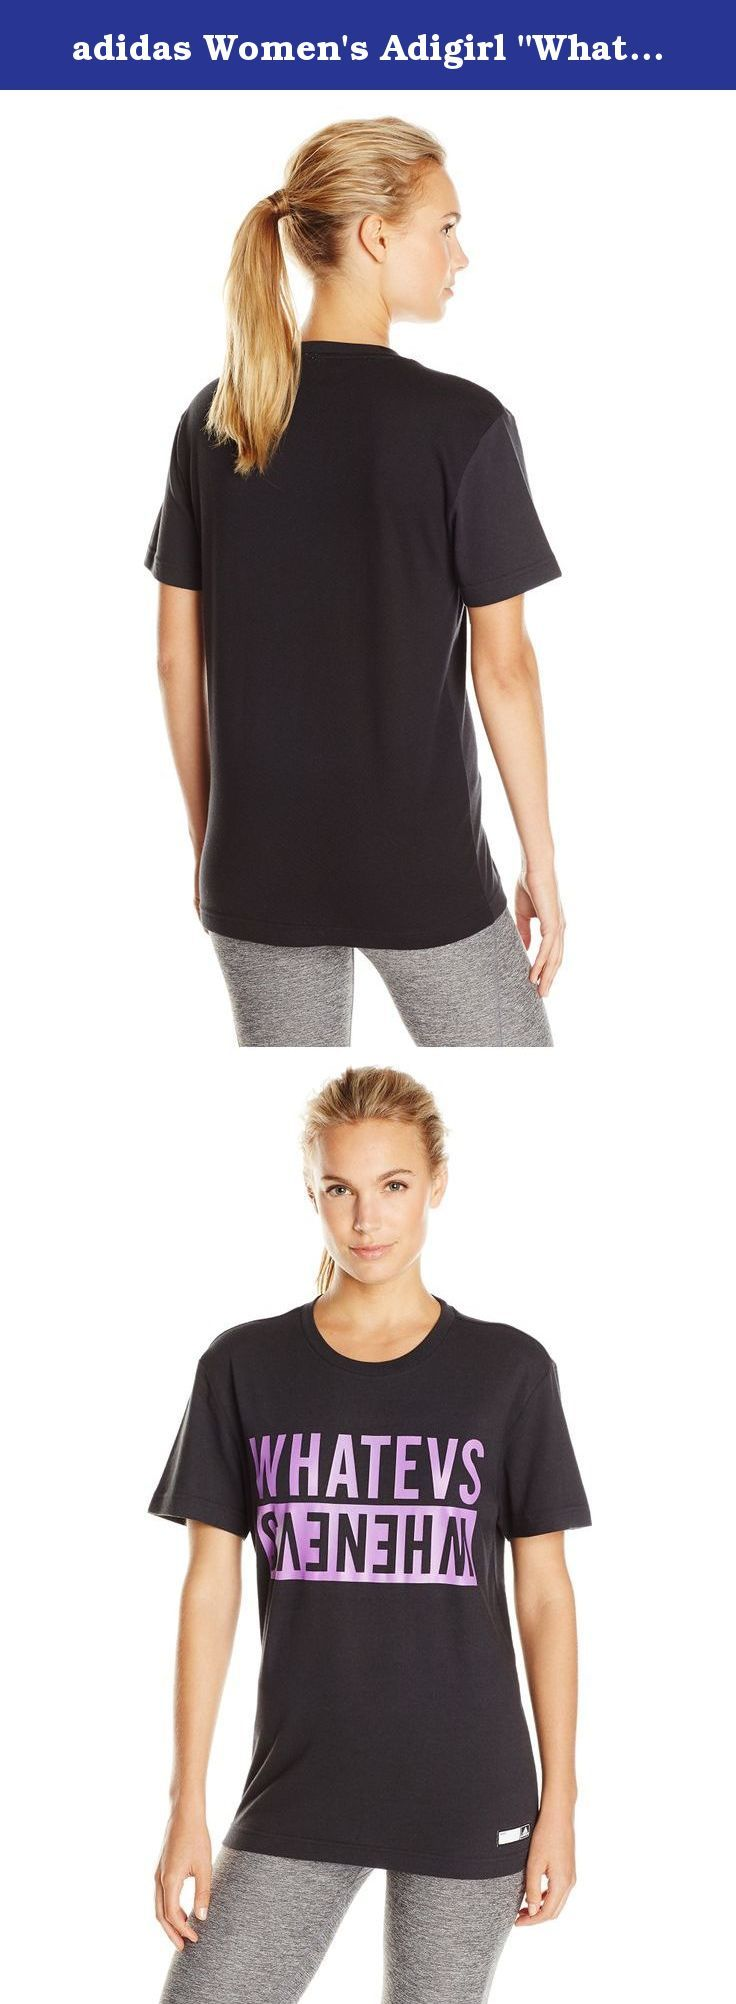 "adidas Women's Adigirl ""Whatevs"" Tee, X-Small, Black. You're always ready to work out. Share your positive attitude with this Women's t-shirt. Cut in a relaxed silhouette, it's made of comfortable, breathable mesh. The graphic says ""whatevs,"" with ""whenevs"" written below upside down and reversed."